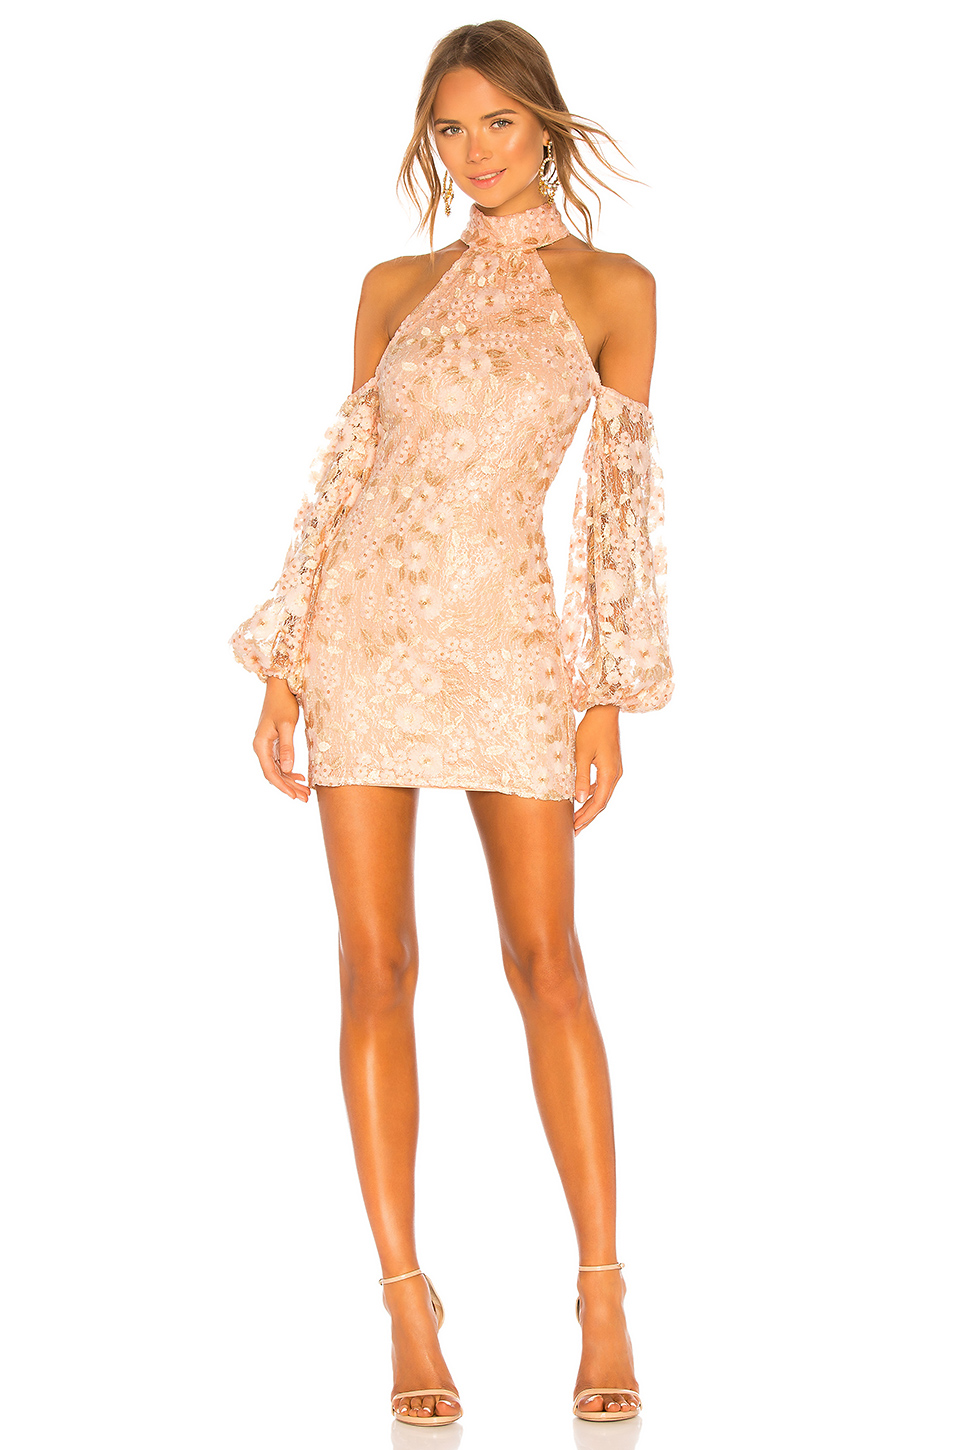 Michael Costello x Revolve Gold Sequined Dress.jpg